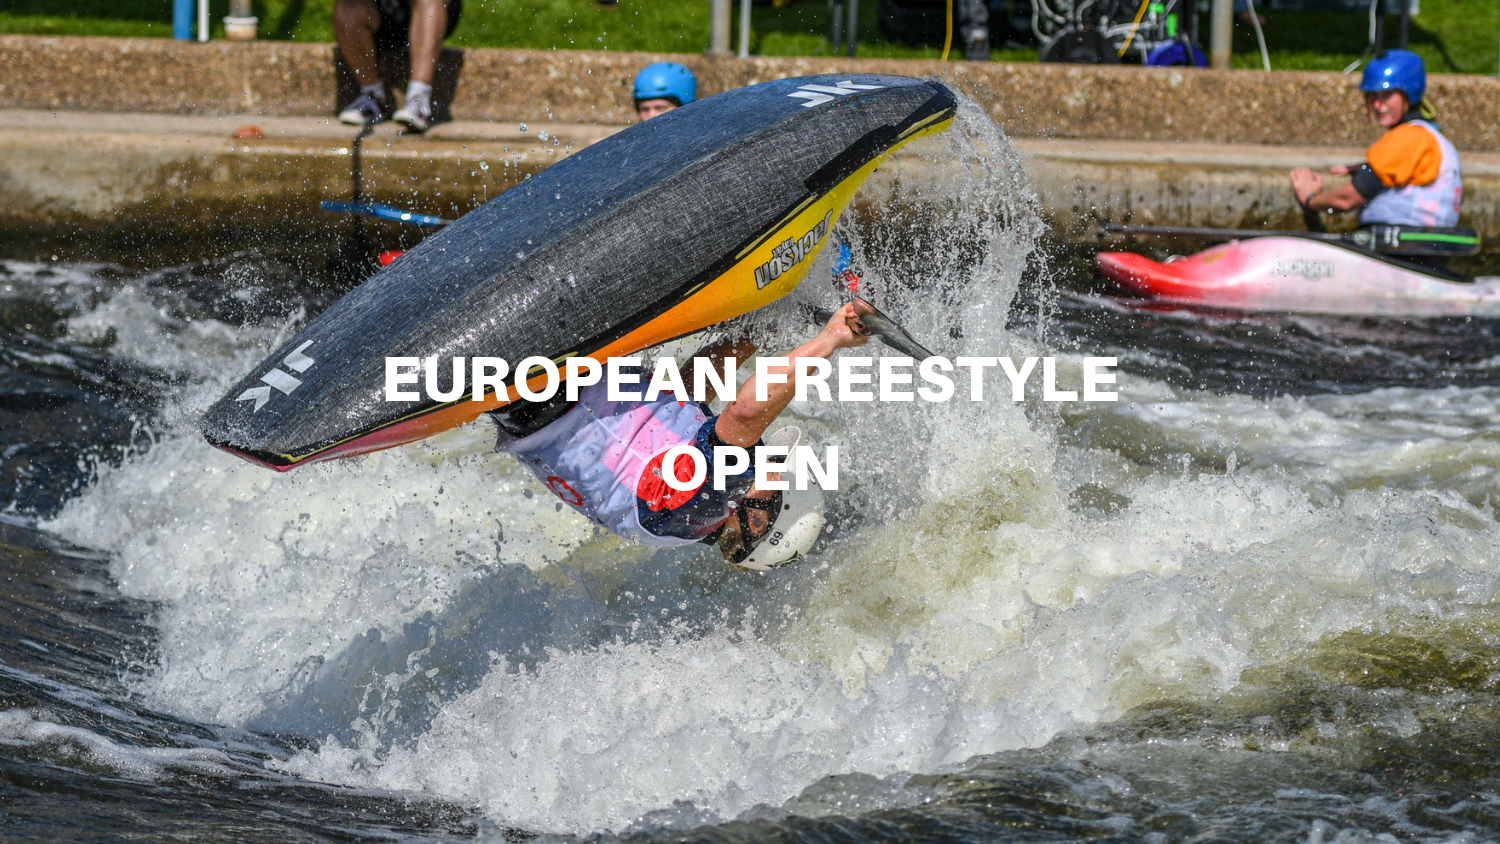 European Open Freestyle Kayaking - A basic offering for a complex competition